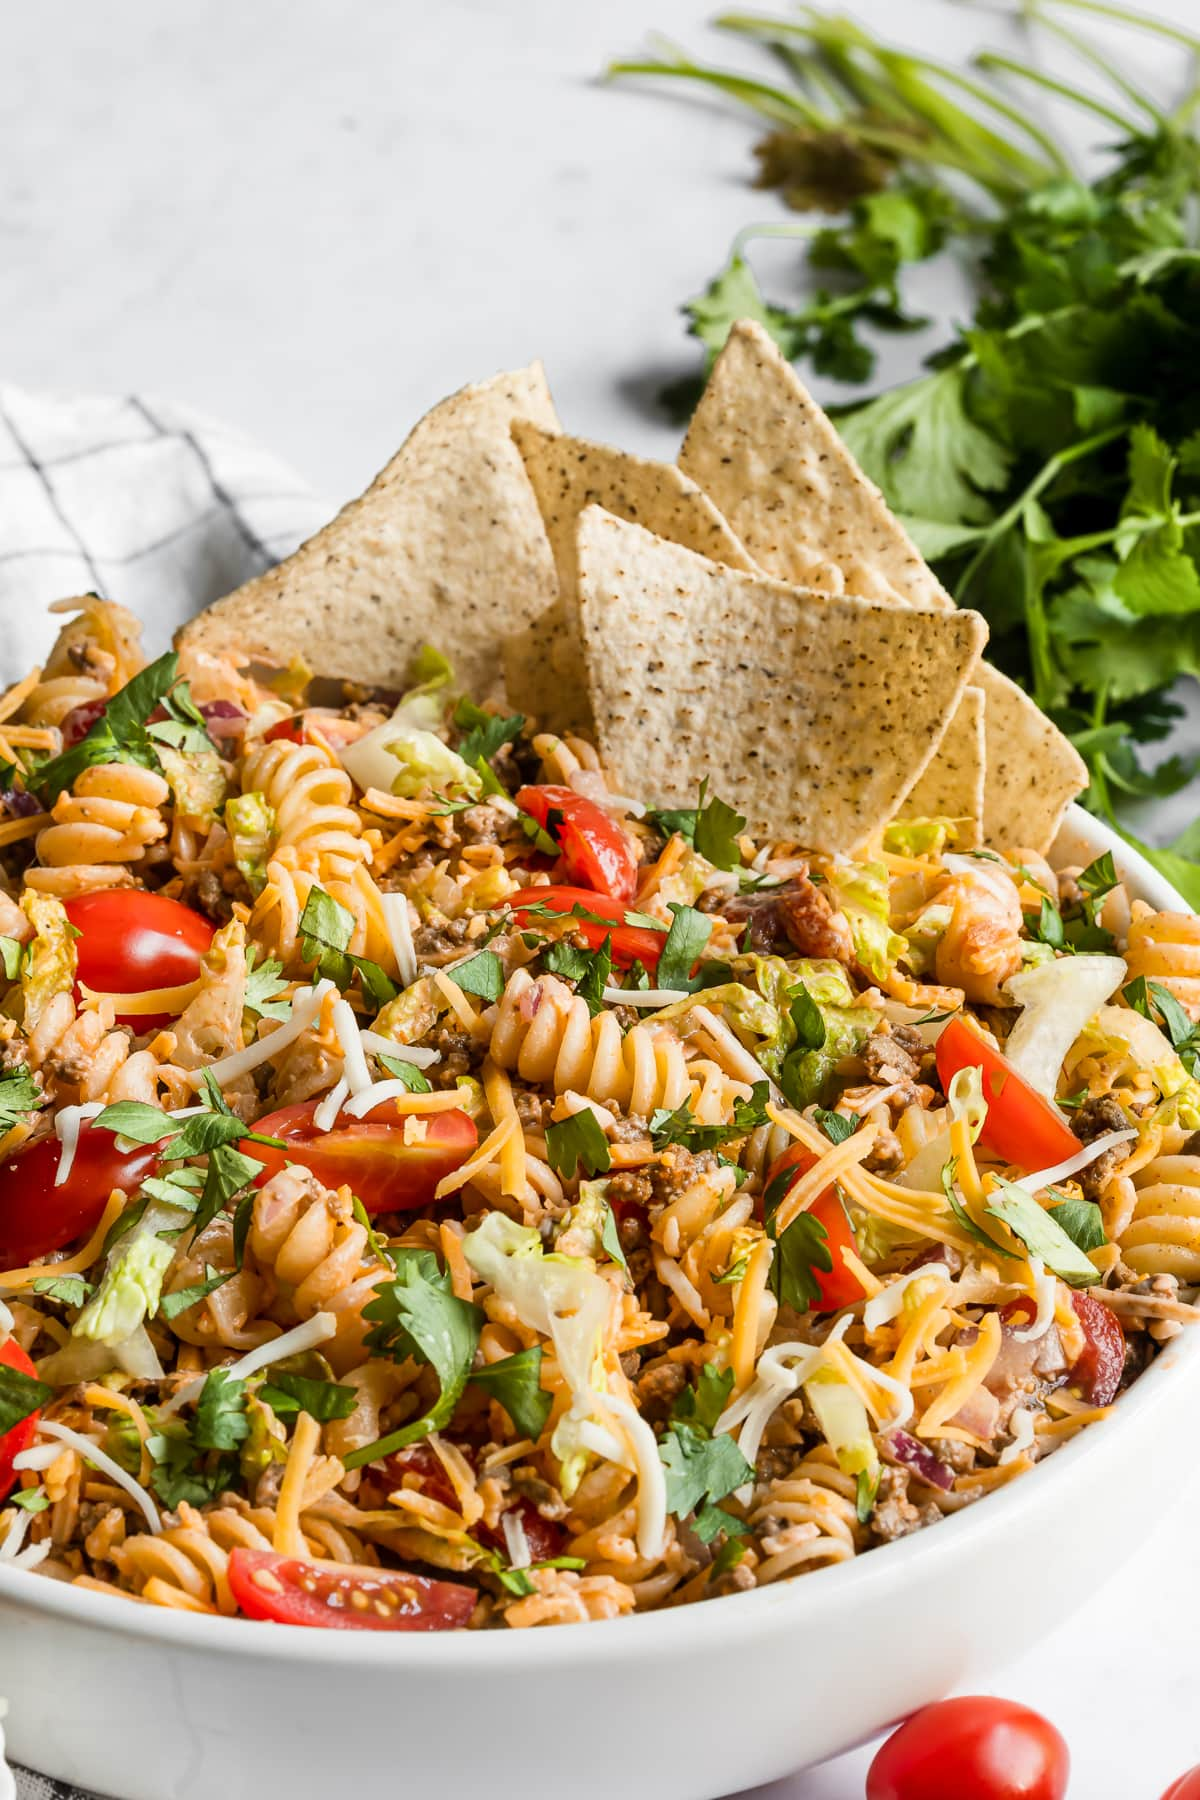 Taco pasta salad served with tortilla chips